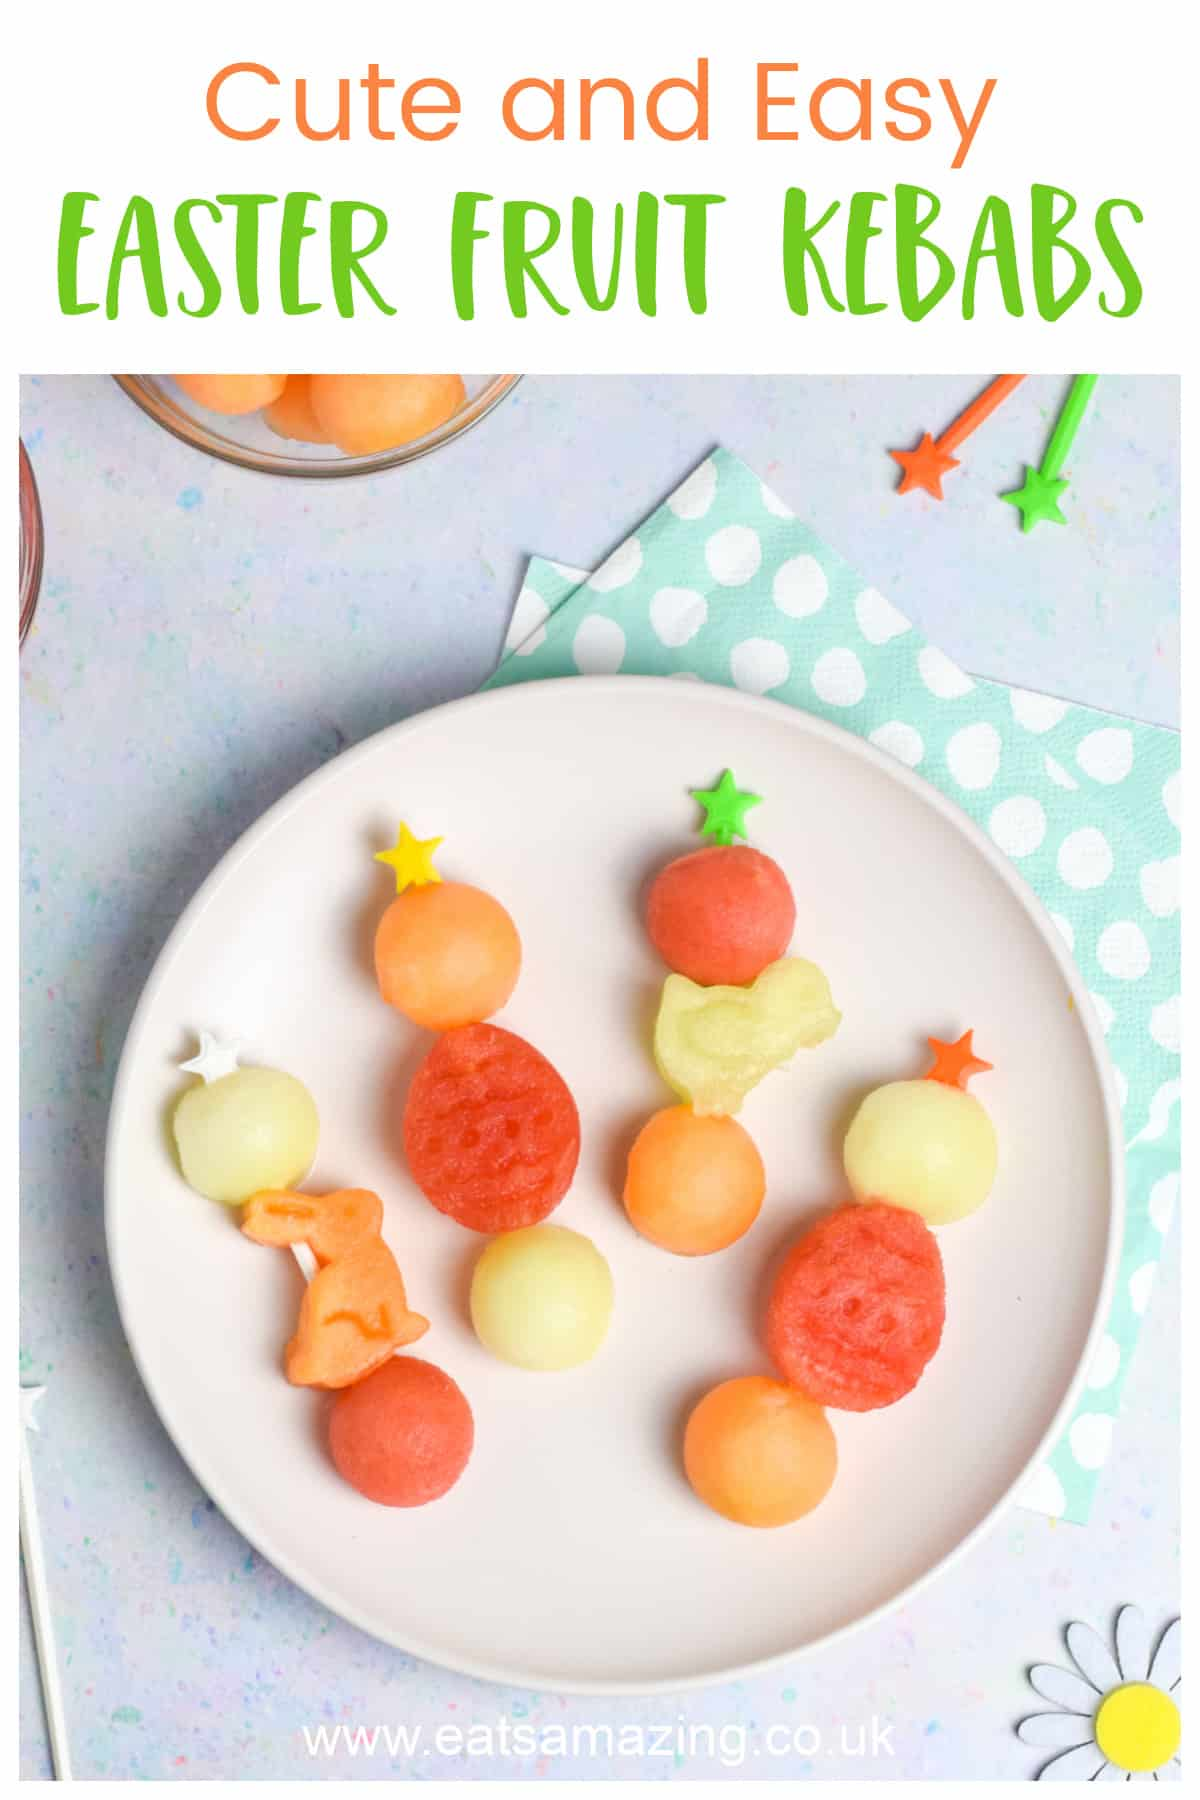 Cute and easy Easter fruit kebabs - healthy Easter recipe for kids